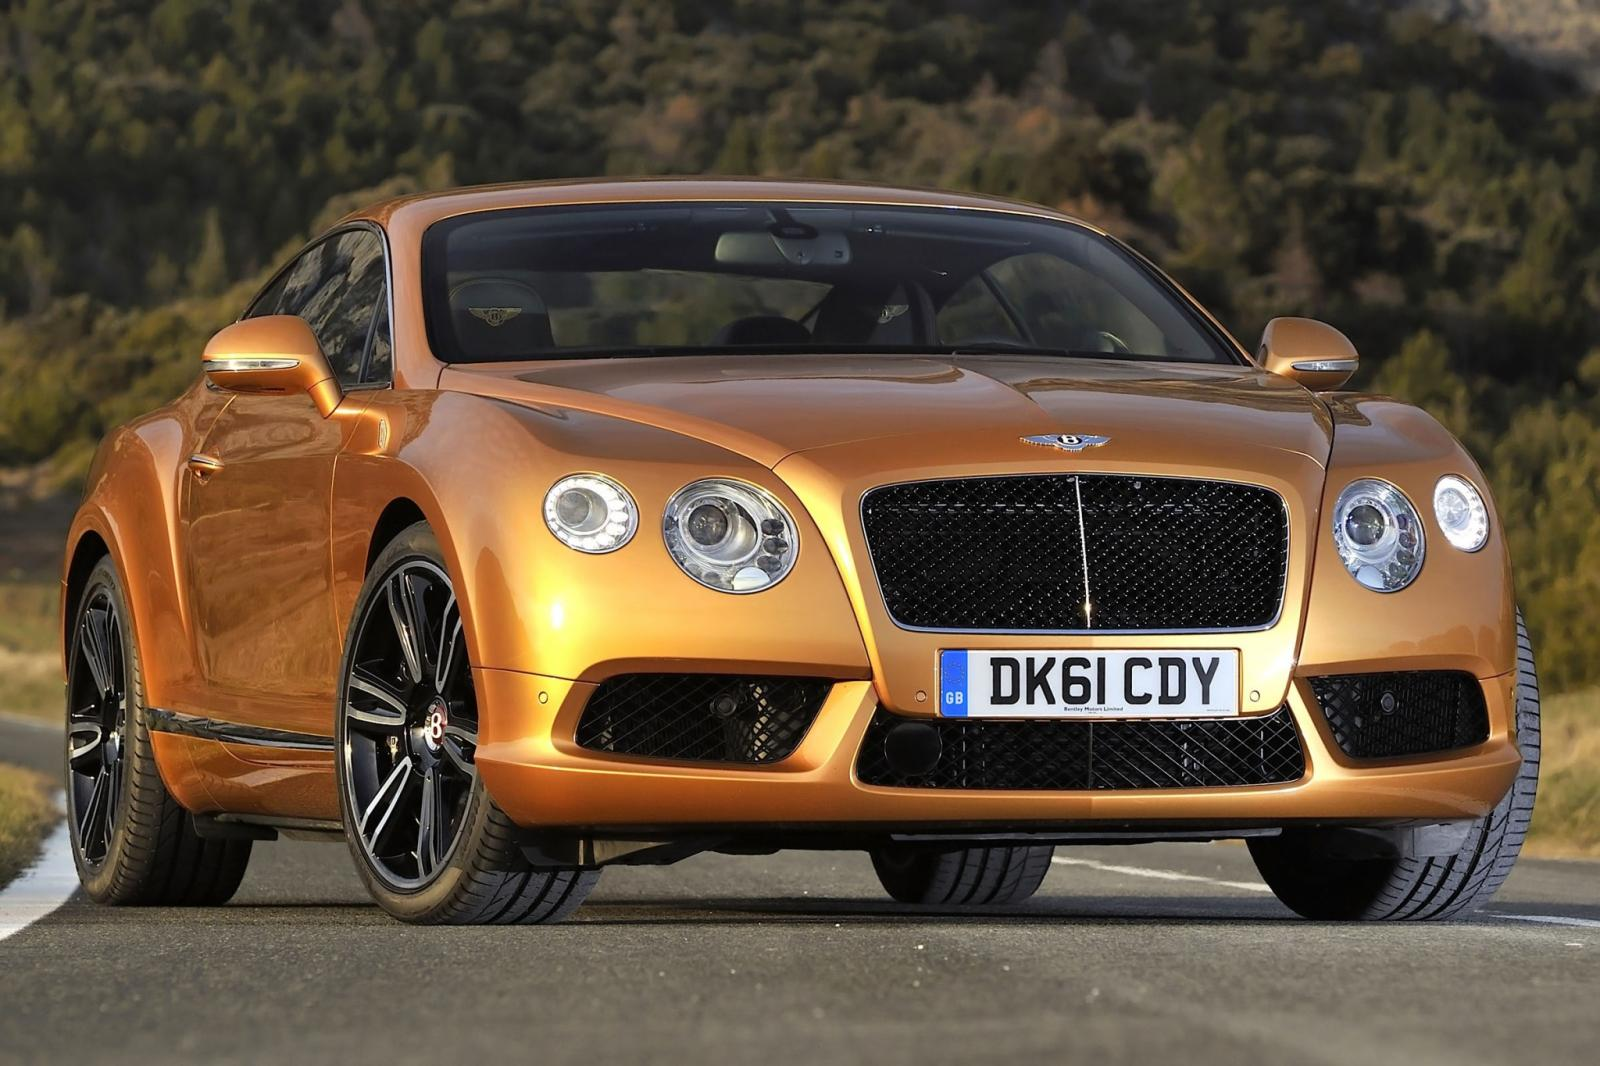 Eight year old wins Bentley supercar